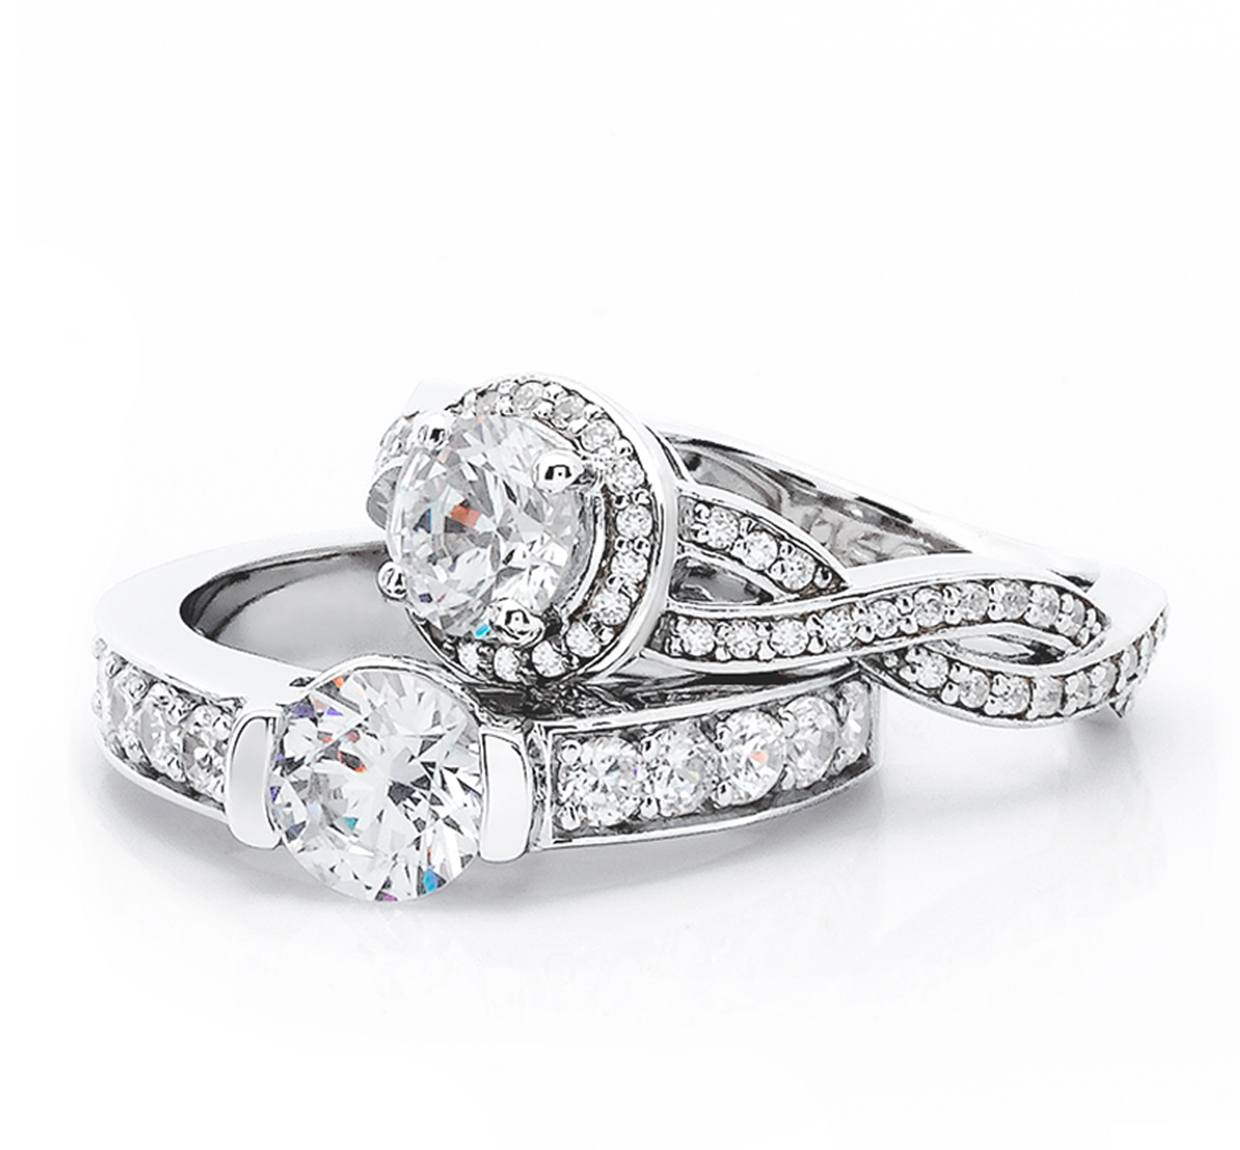 hero-image-engagement-ring_v5@2x